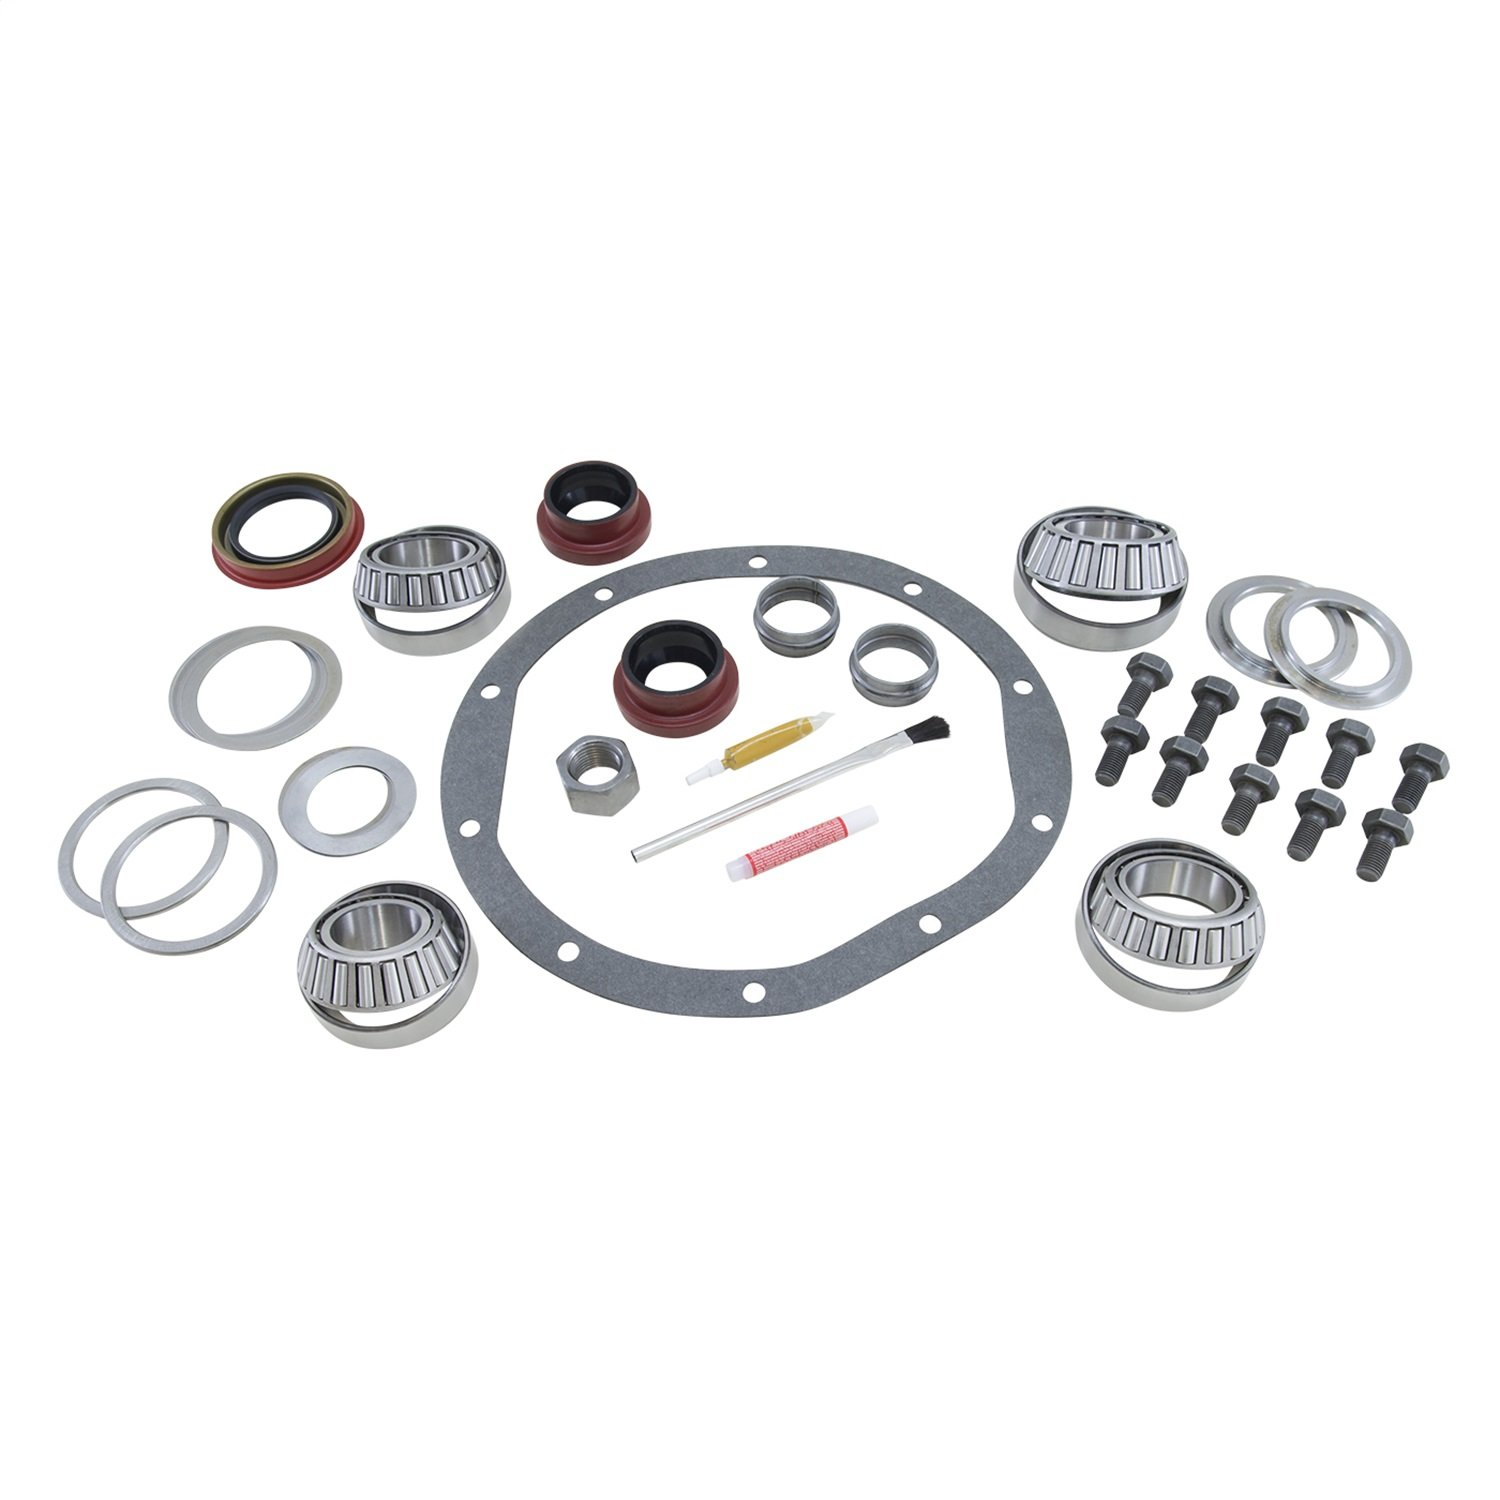 Yukon (YK GM8.5-HD-F) Master Overhaul Kit for GM 8.5'' Front Differential with Aftermarket Positraction